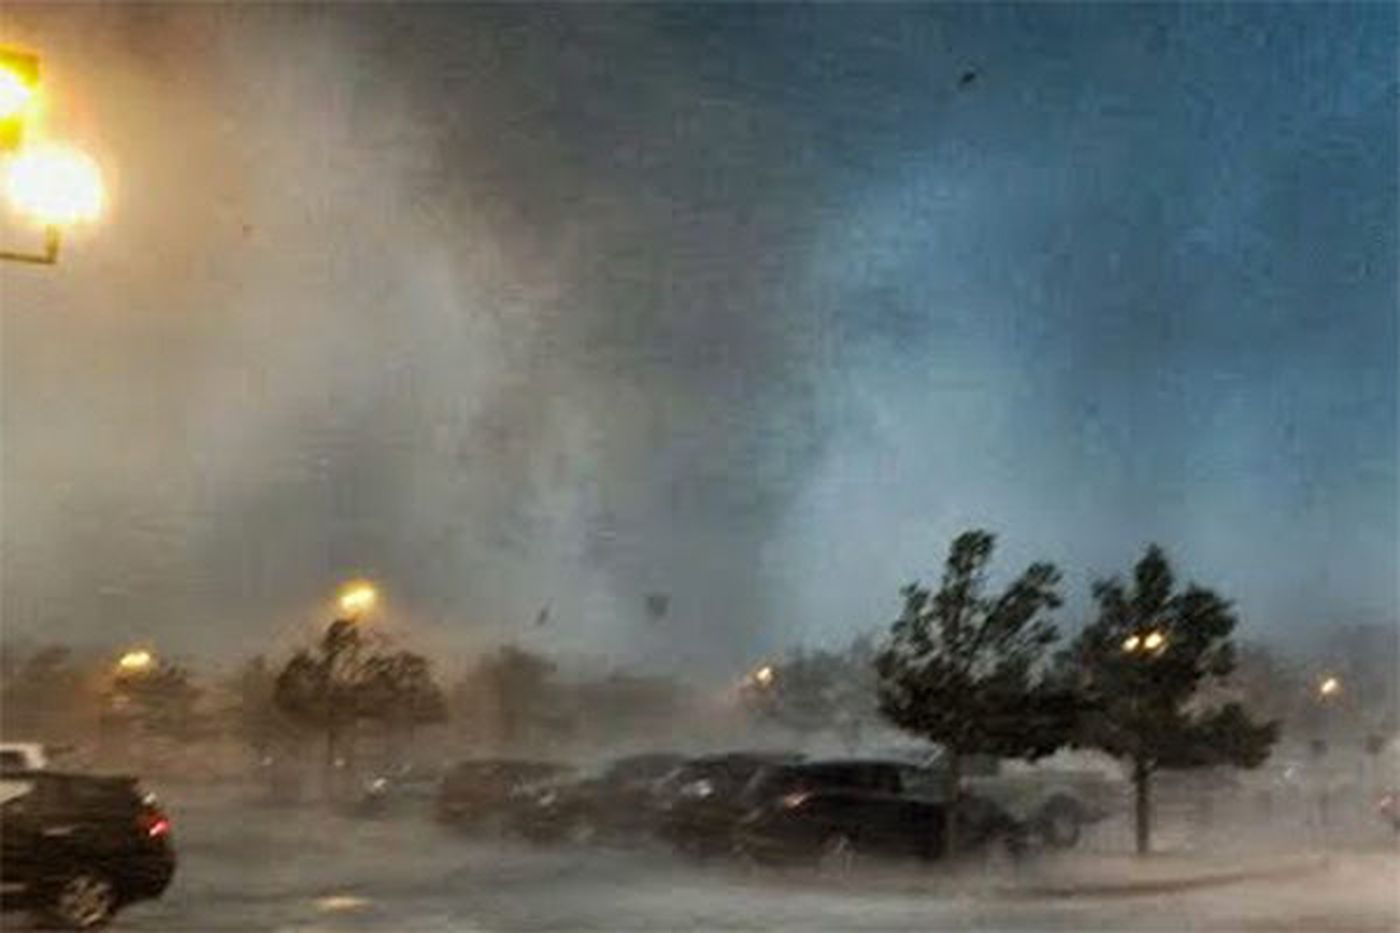 Watch: Confirmed tornado rips through Home Depot parking lot in New Jersey